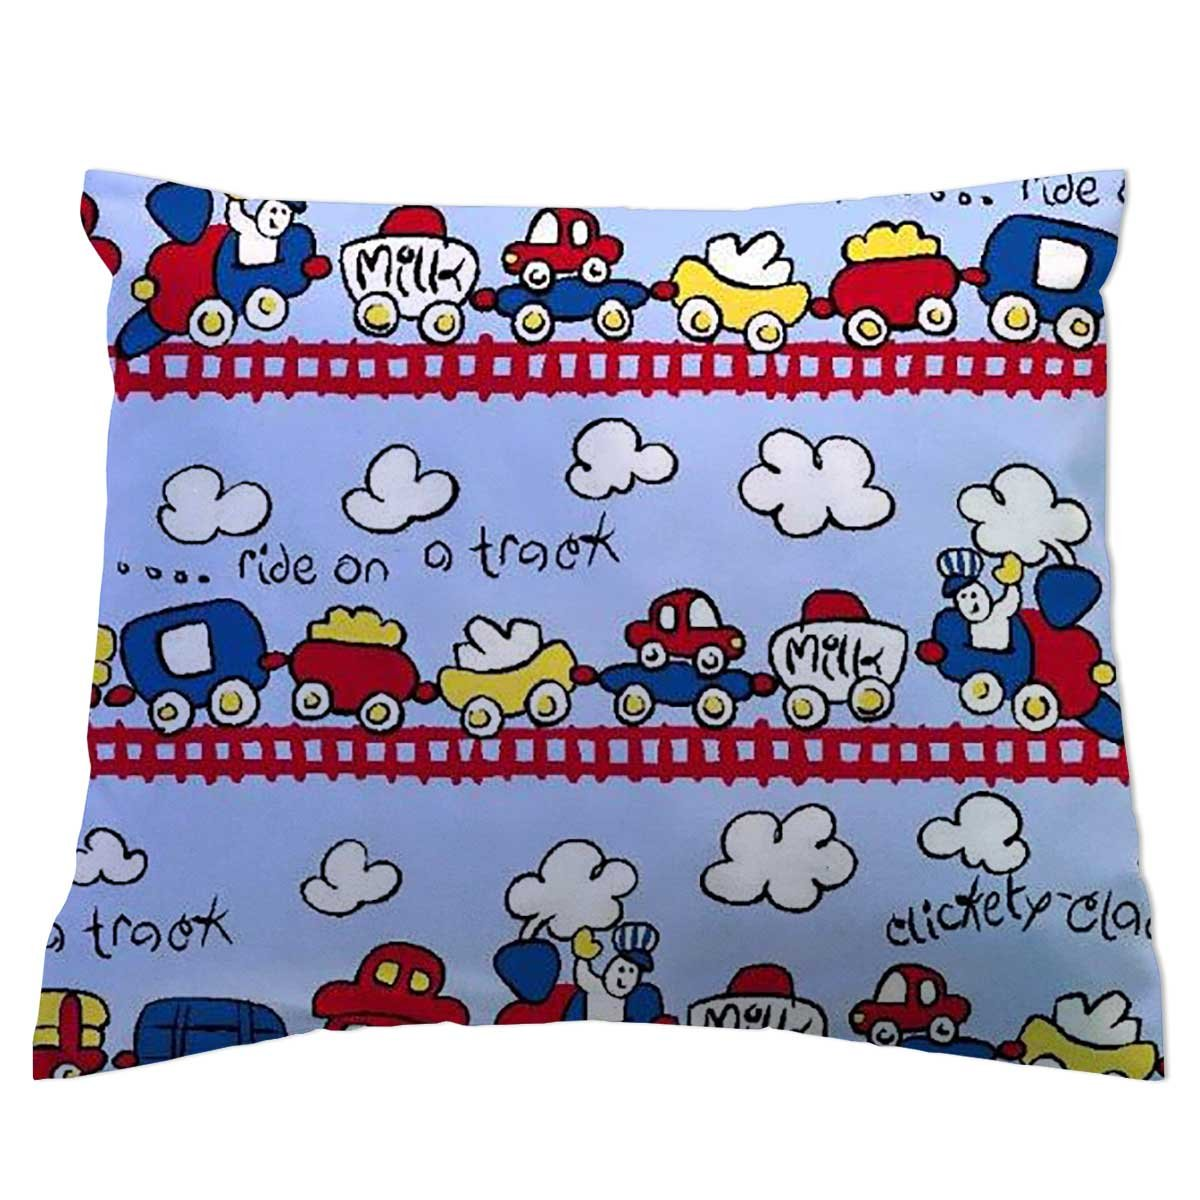 SheetWorld Crib/Toddler Percale Baby Pillow Case - Fun Train Tracks - Made In USA